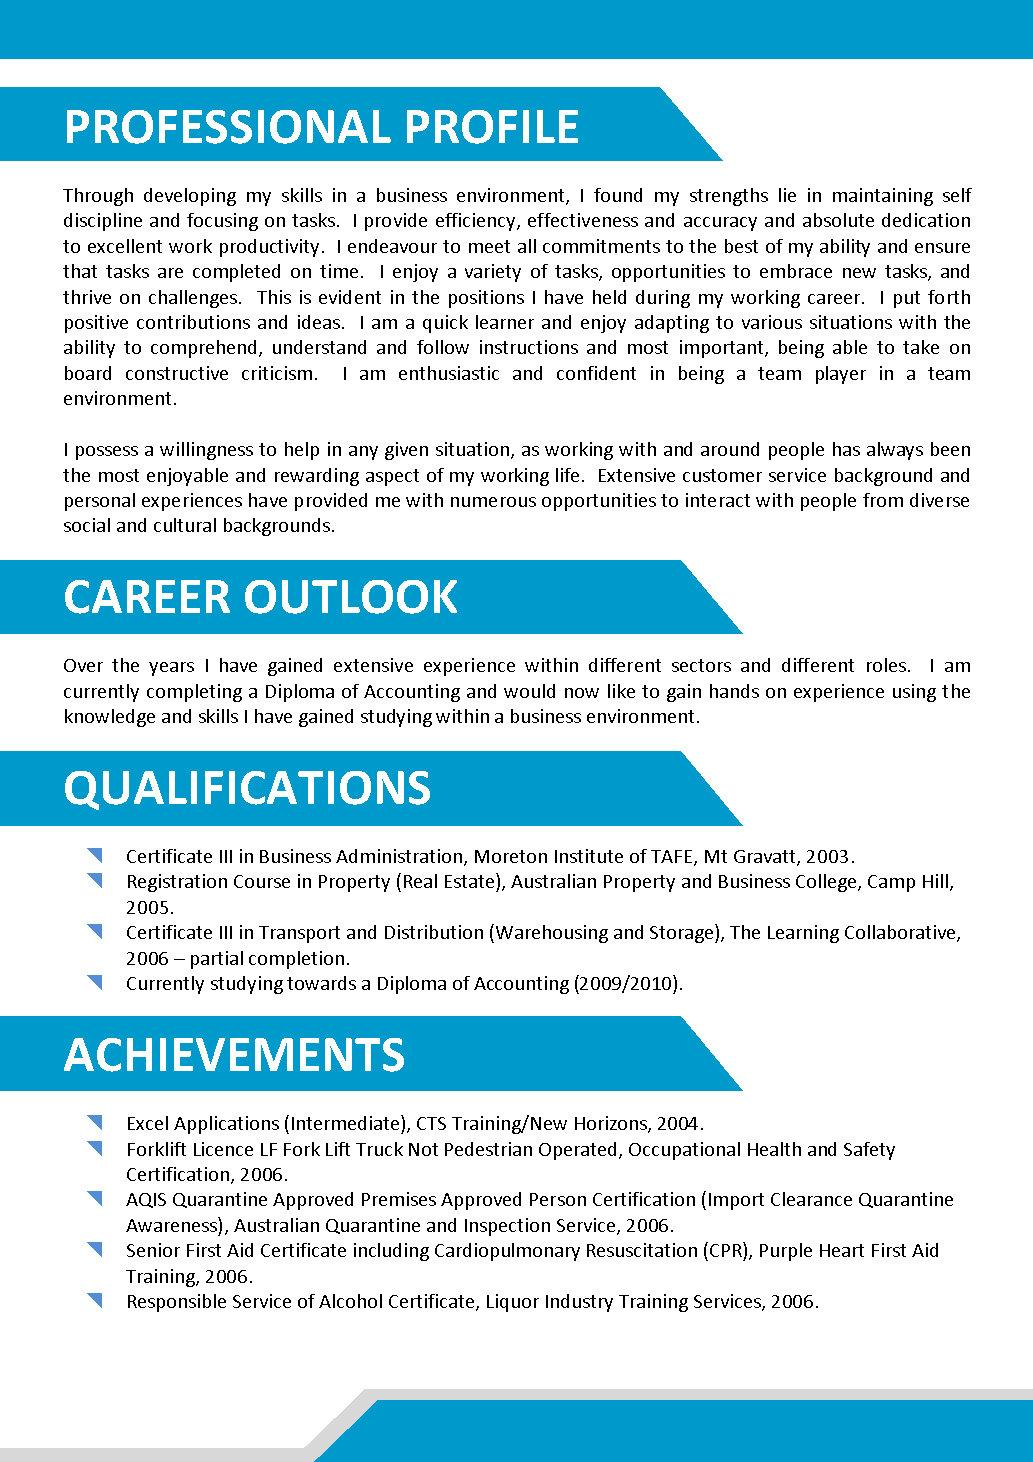 Professional Accounting Resume Templates We Can Help With Professional Resume Writing Resume